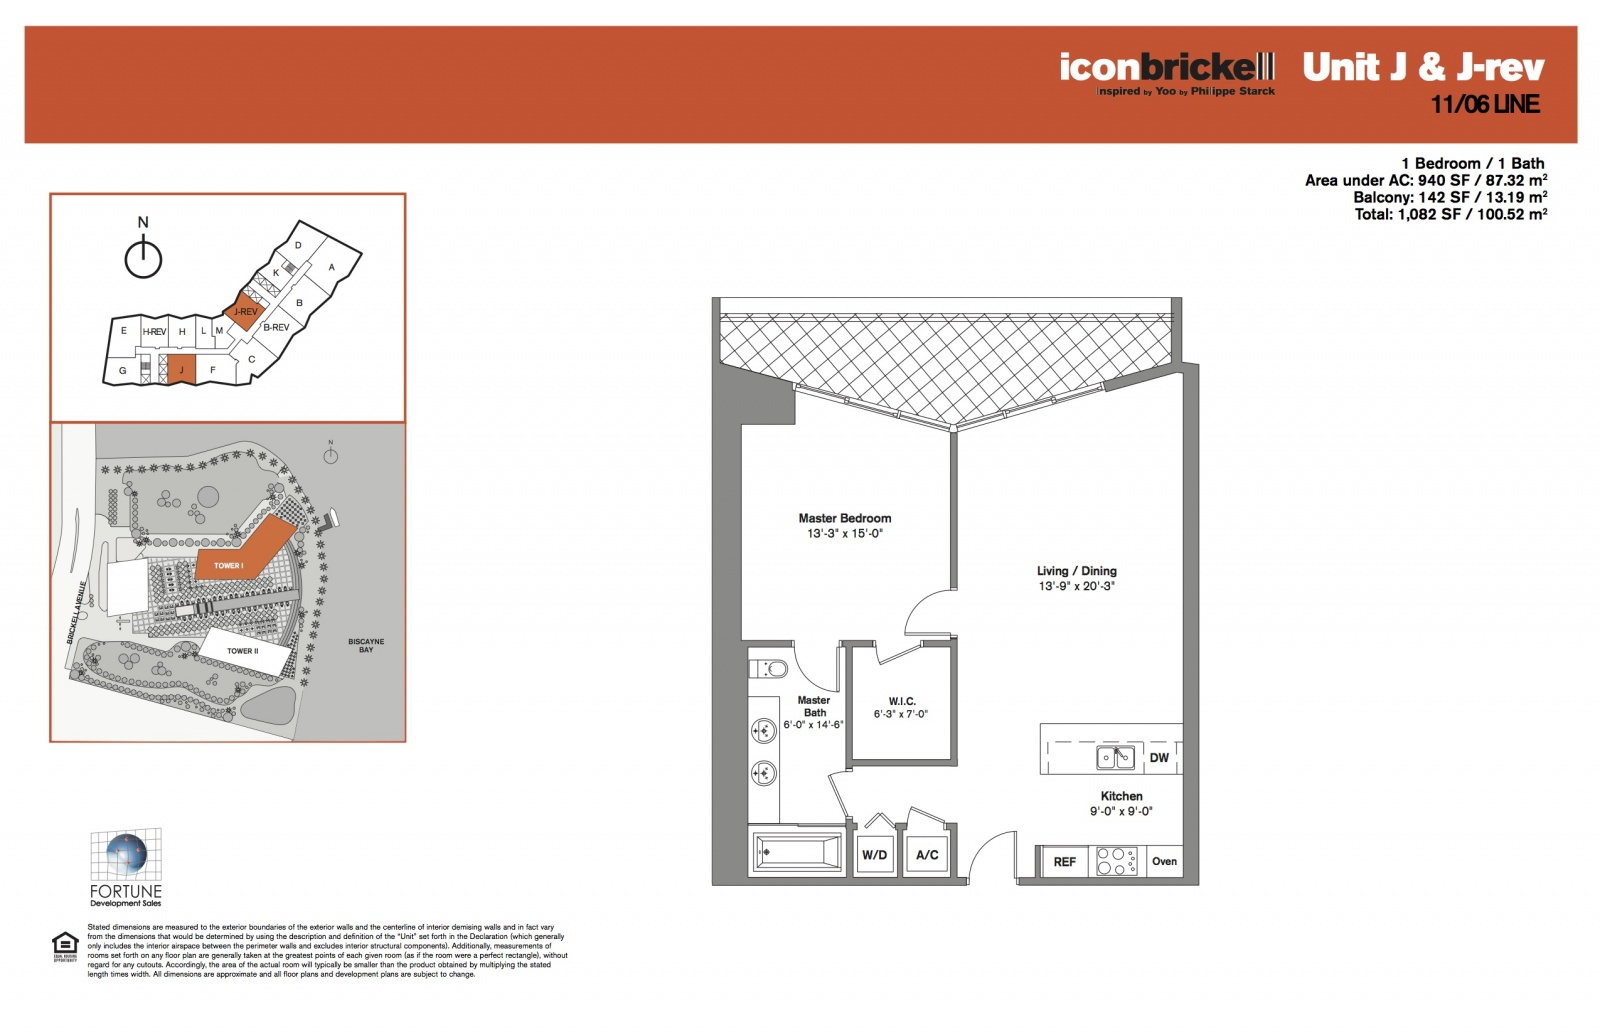 Icon Brickell One, lines 06 and 11 floor plan